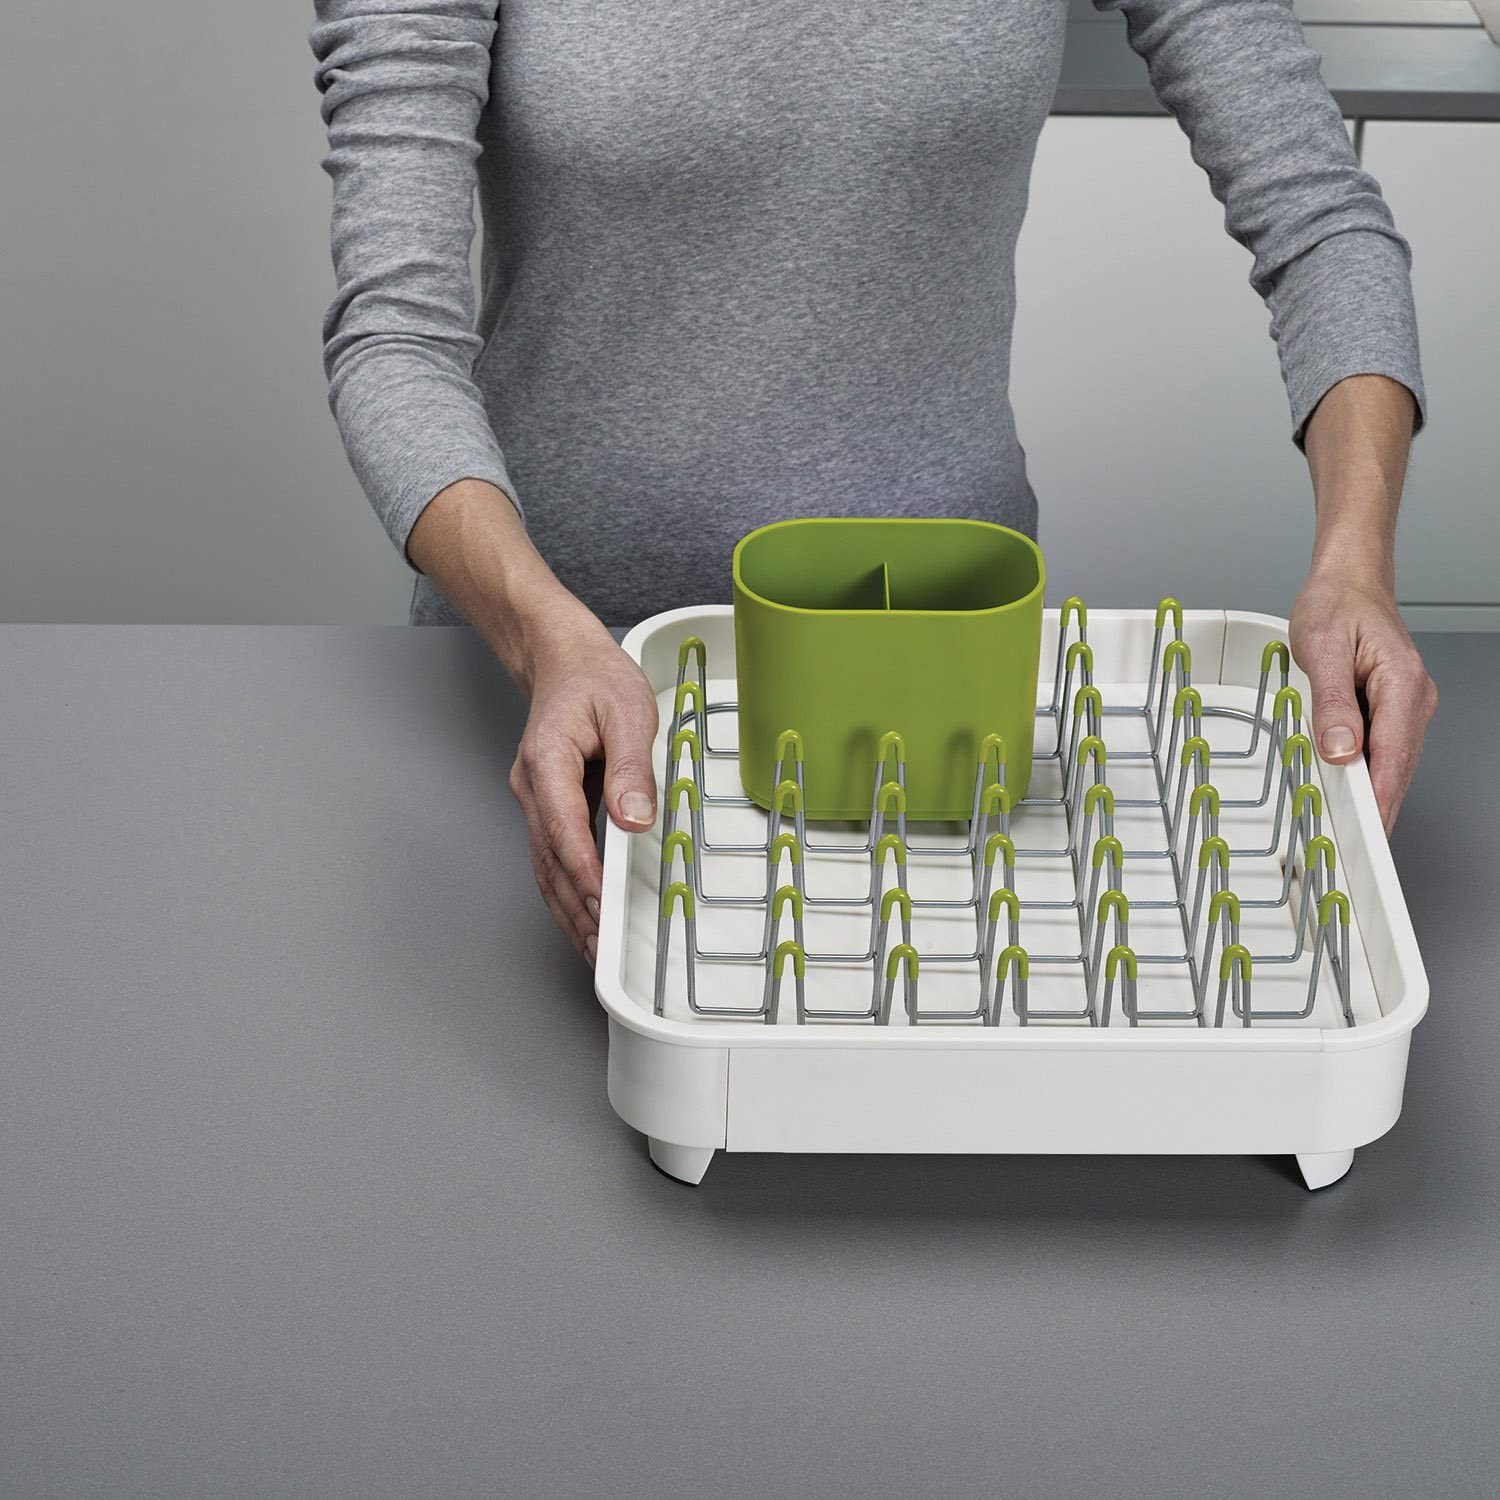 Joseph Joseph 85071 Extend Expandable Dish Drying Rack And Drainboard Set Foldaway Integrated Spout Drainer Removable Steel Rack And Cutlery Holder White Arts Crafts Sewing Amazon Com